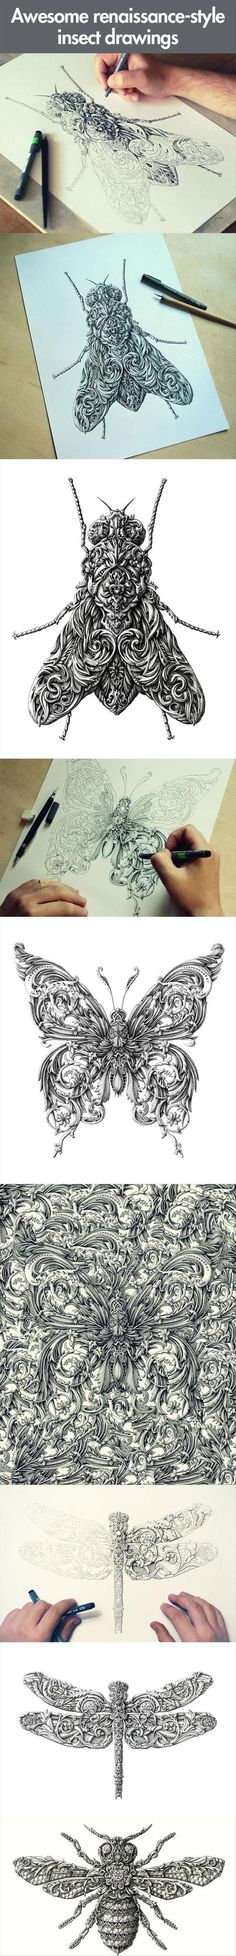 Awesome renaissance-style insect drawings This would be a cool tattoo Doodles Zentangles, Insect Art, Renaissance Fashion, Doodle Art, Amazing Art, Epic Art, Painting & Drawing, Line Art, Creative